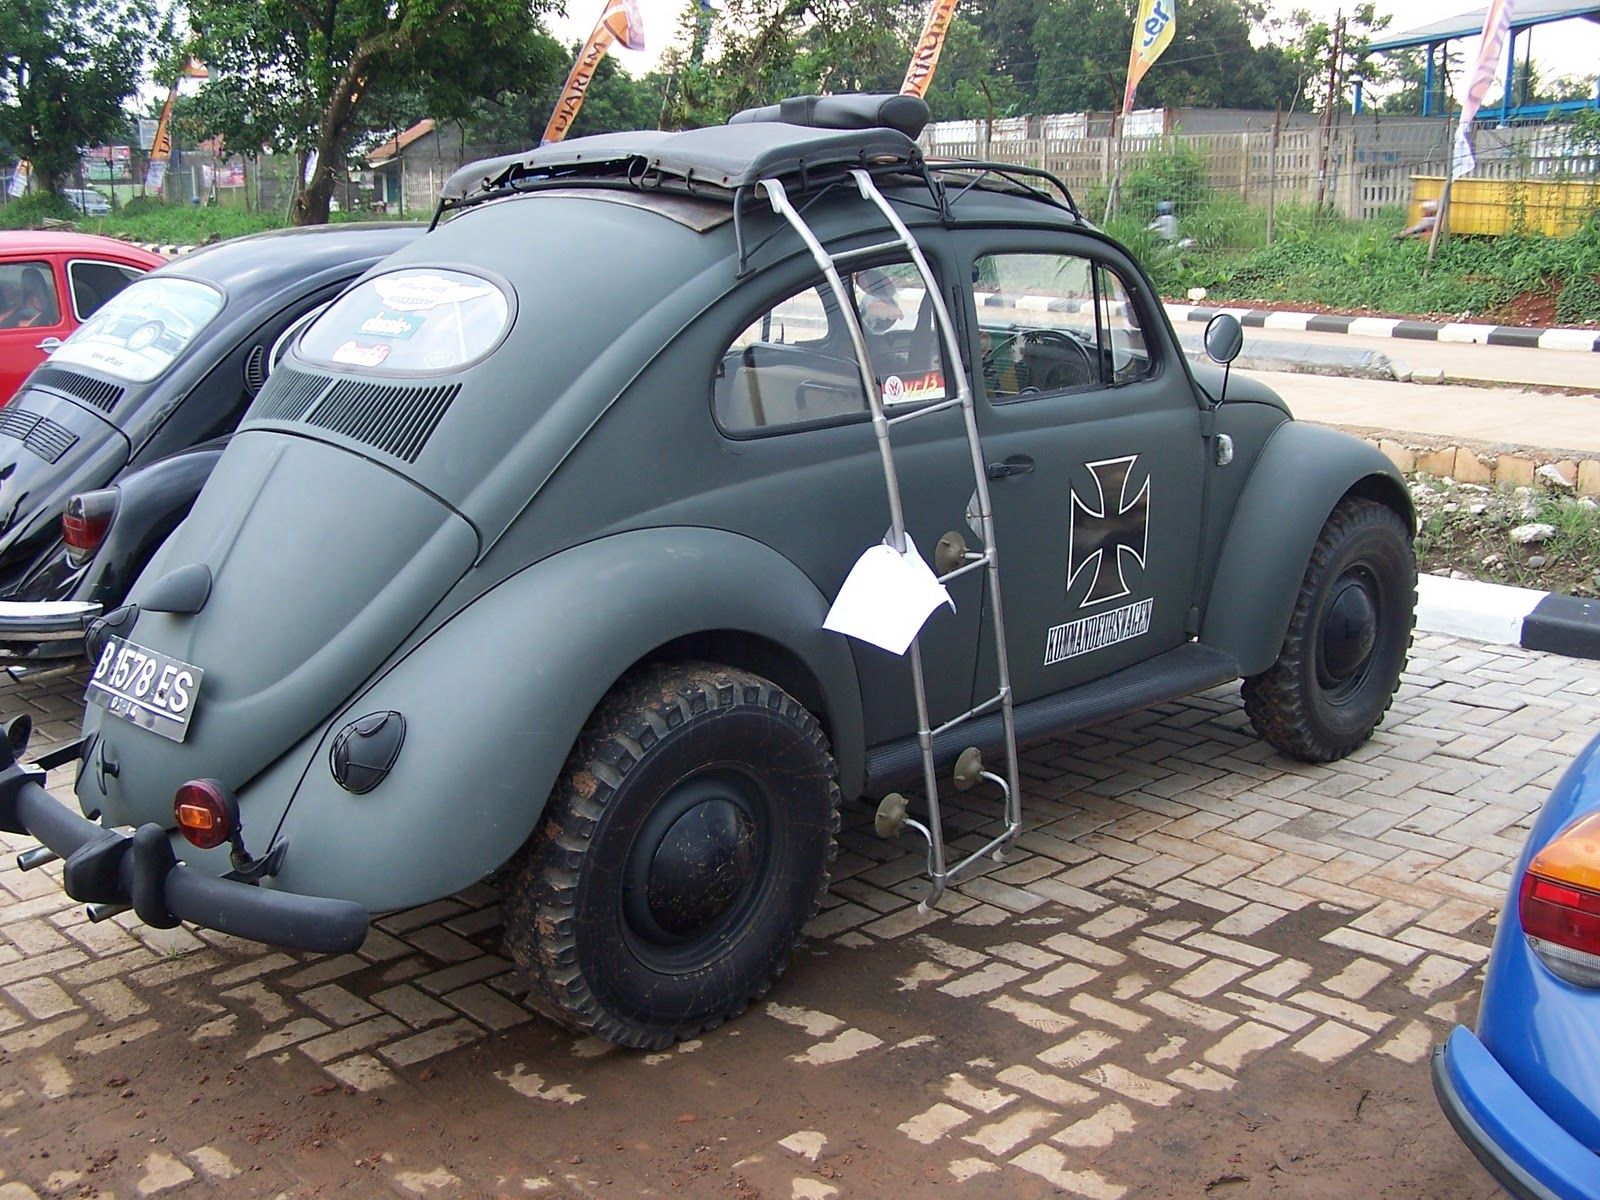 Vintage Volkswagen Indonesia Volkswagen Type Sedan Kafer Beetle